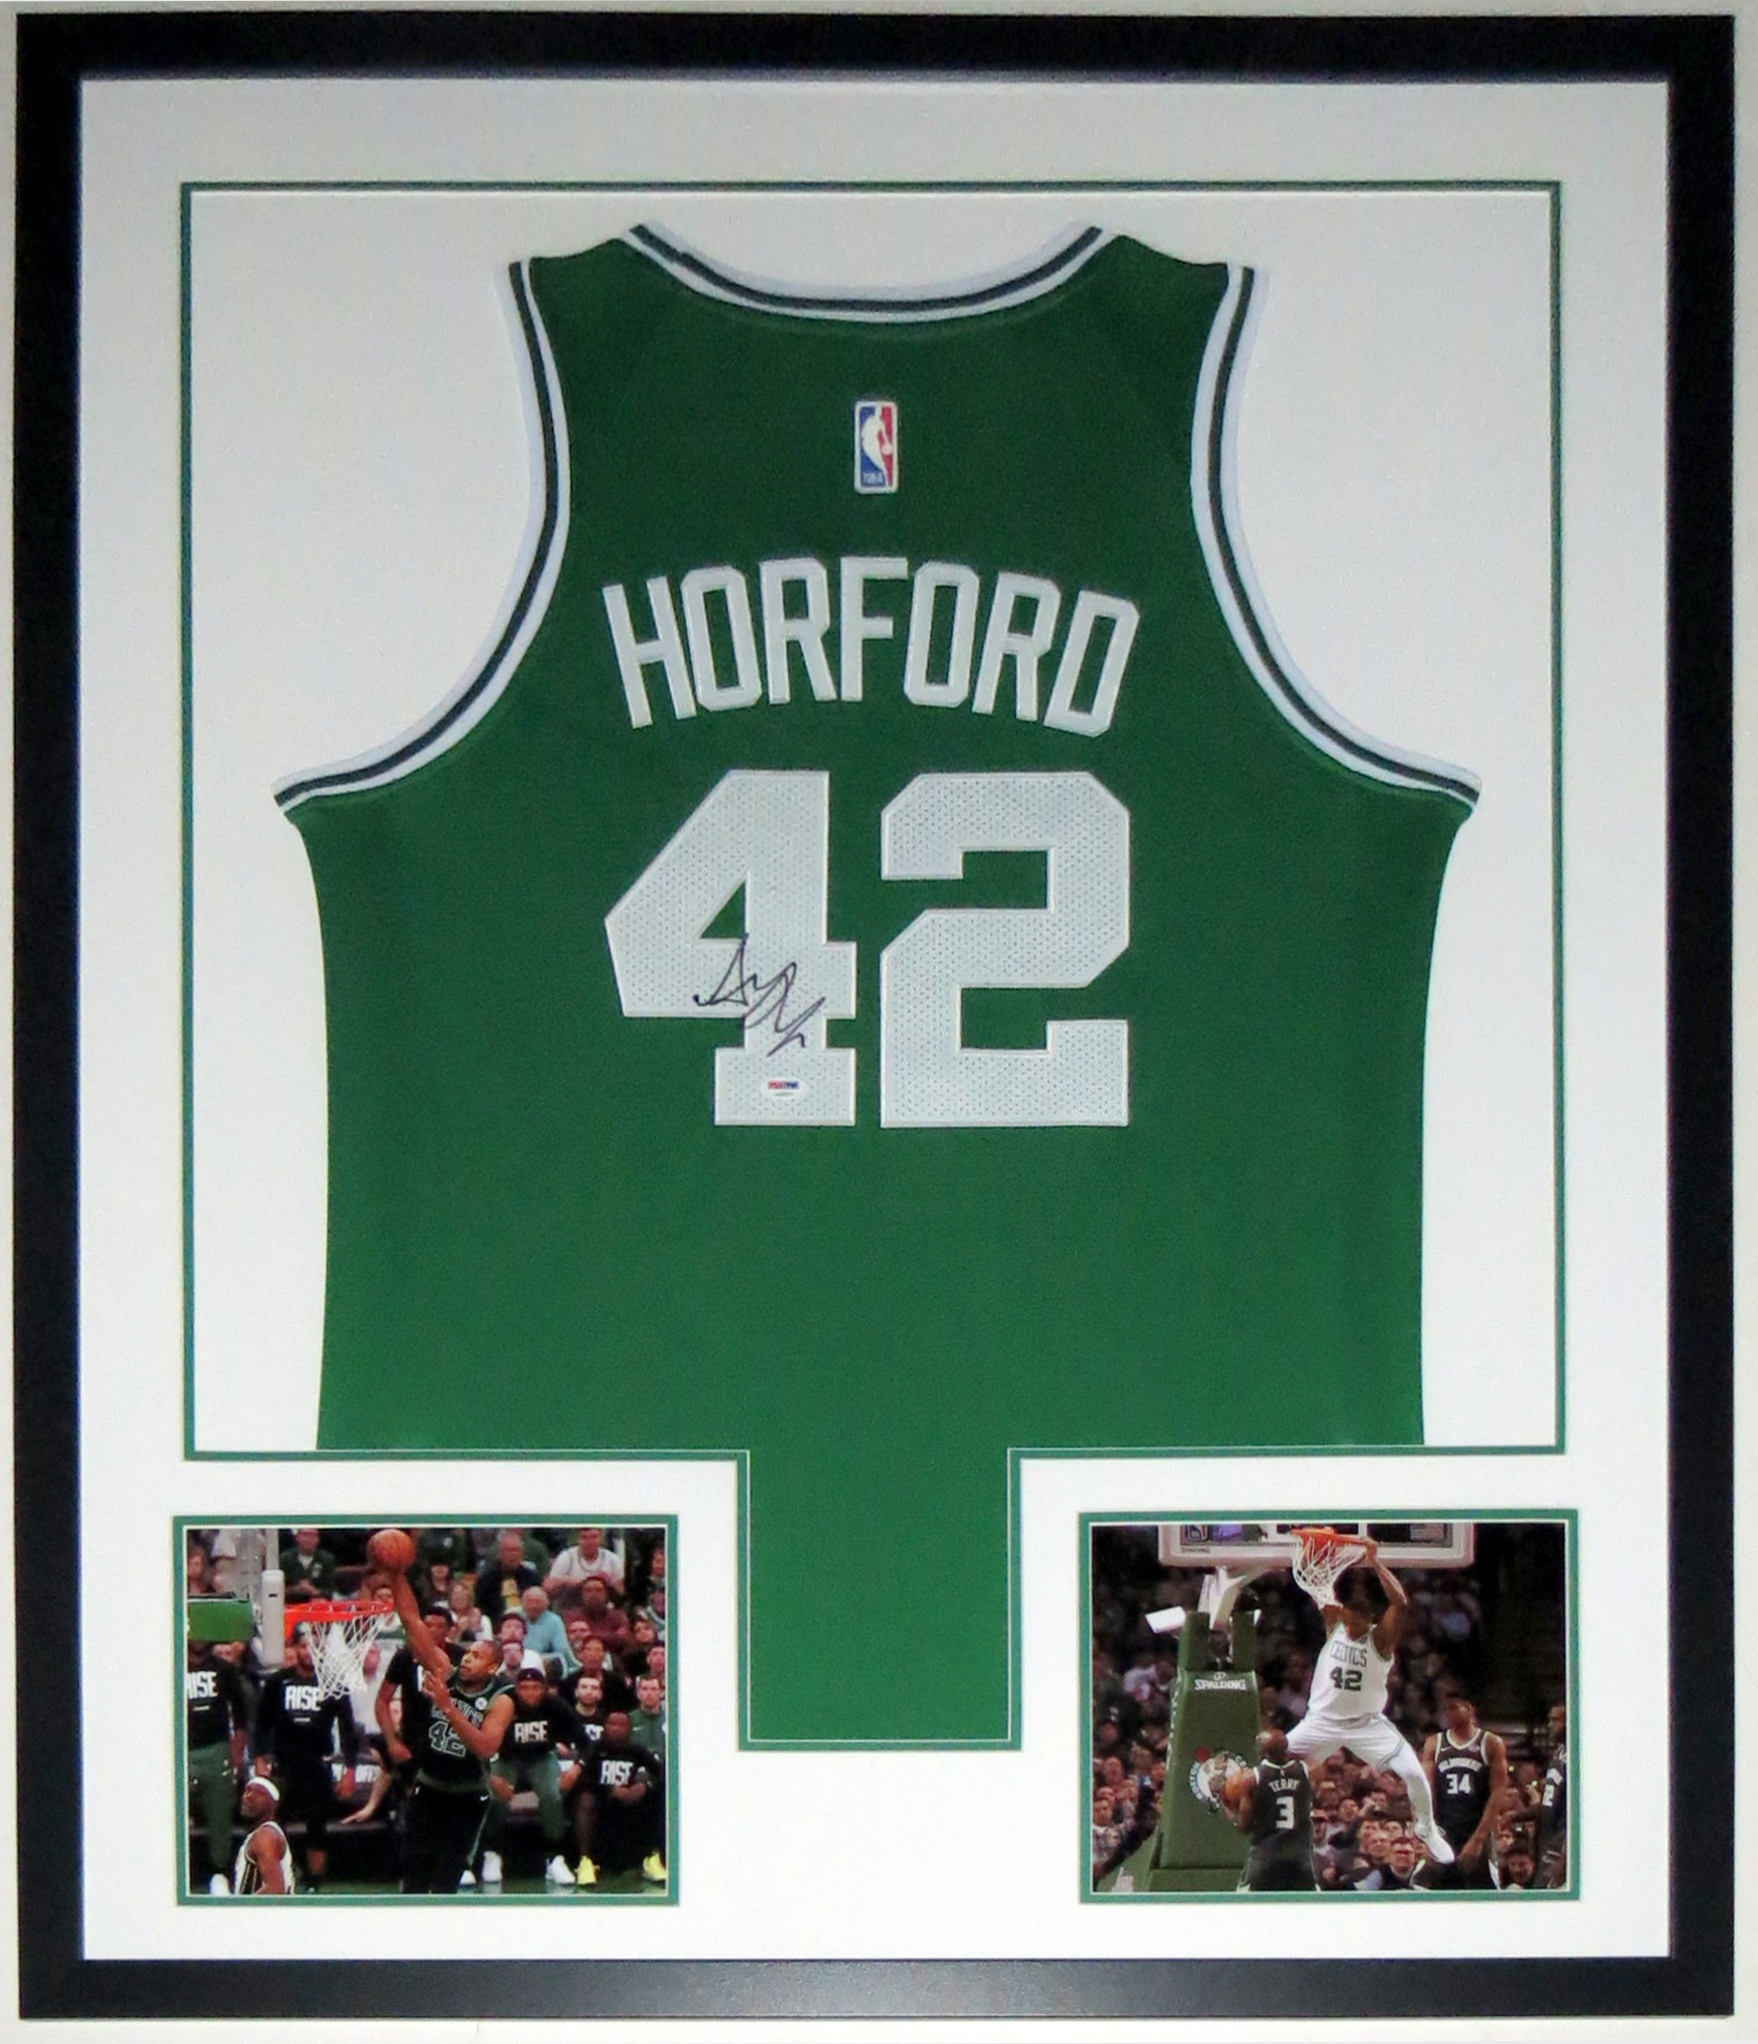 422a9745c Al Horford Signed Boston Celtics Jersey - PSA DNA COA Authenticated -  Professionally Framed  amp